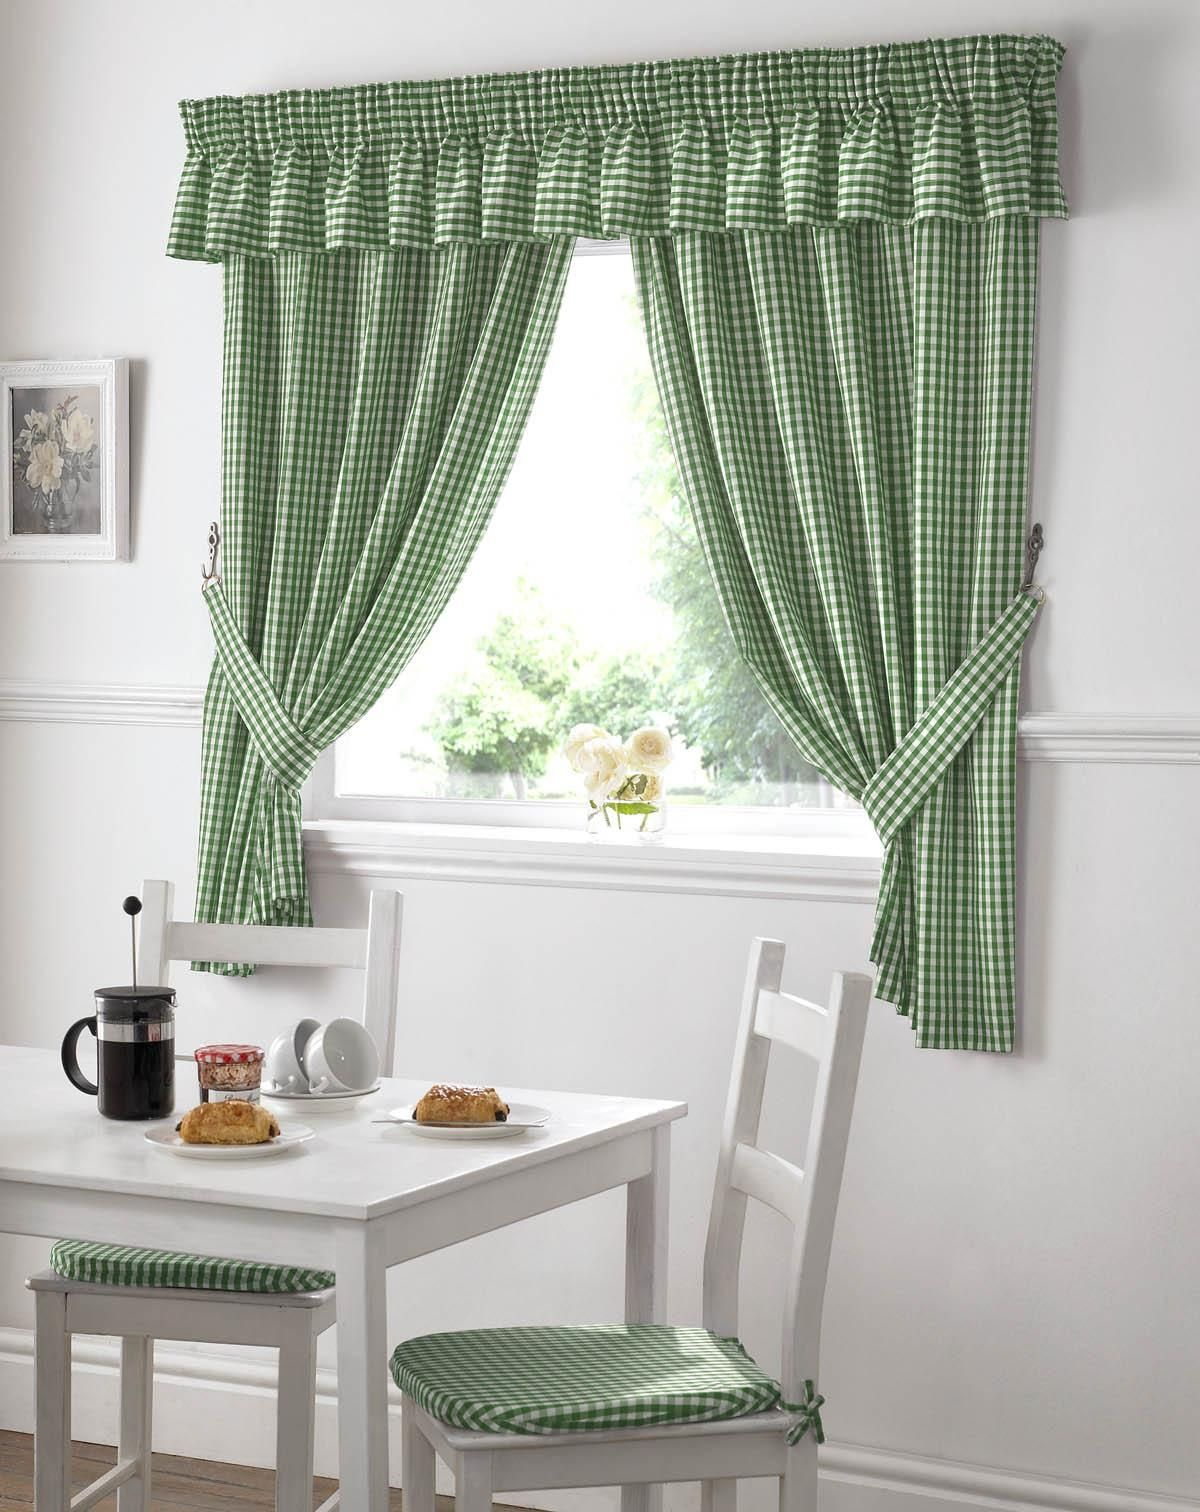 Olive Green Kitchen Curtains  Httplatulufeed Gorgeous White Kitchen Curtains Inspiration Design